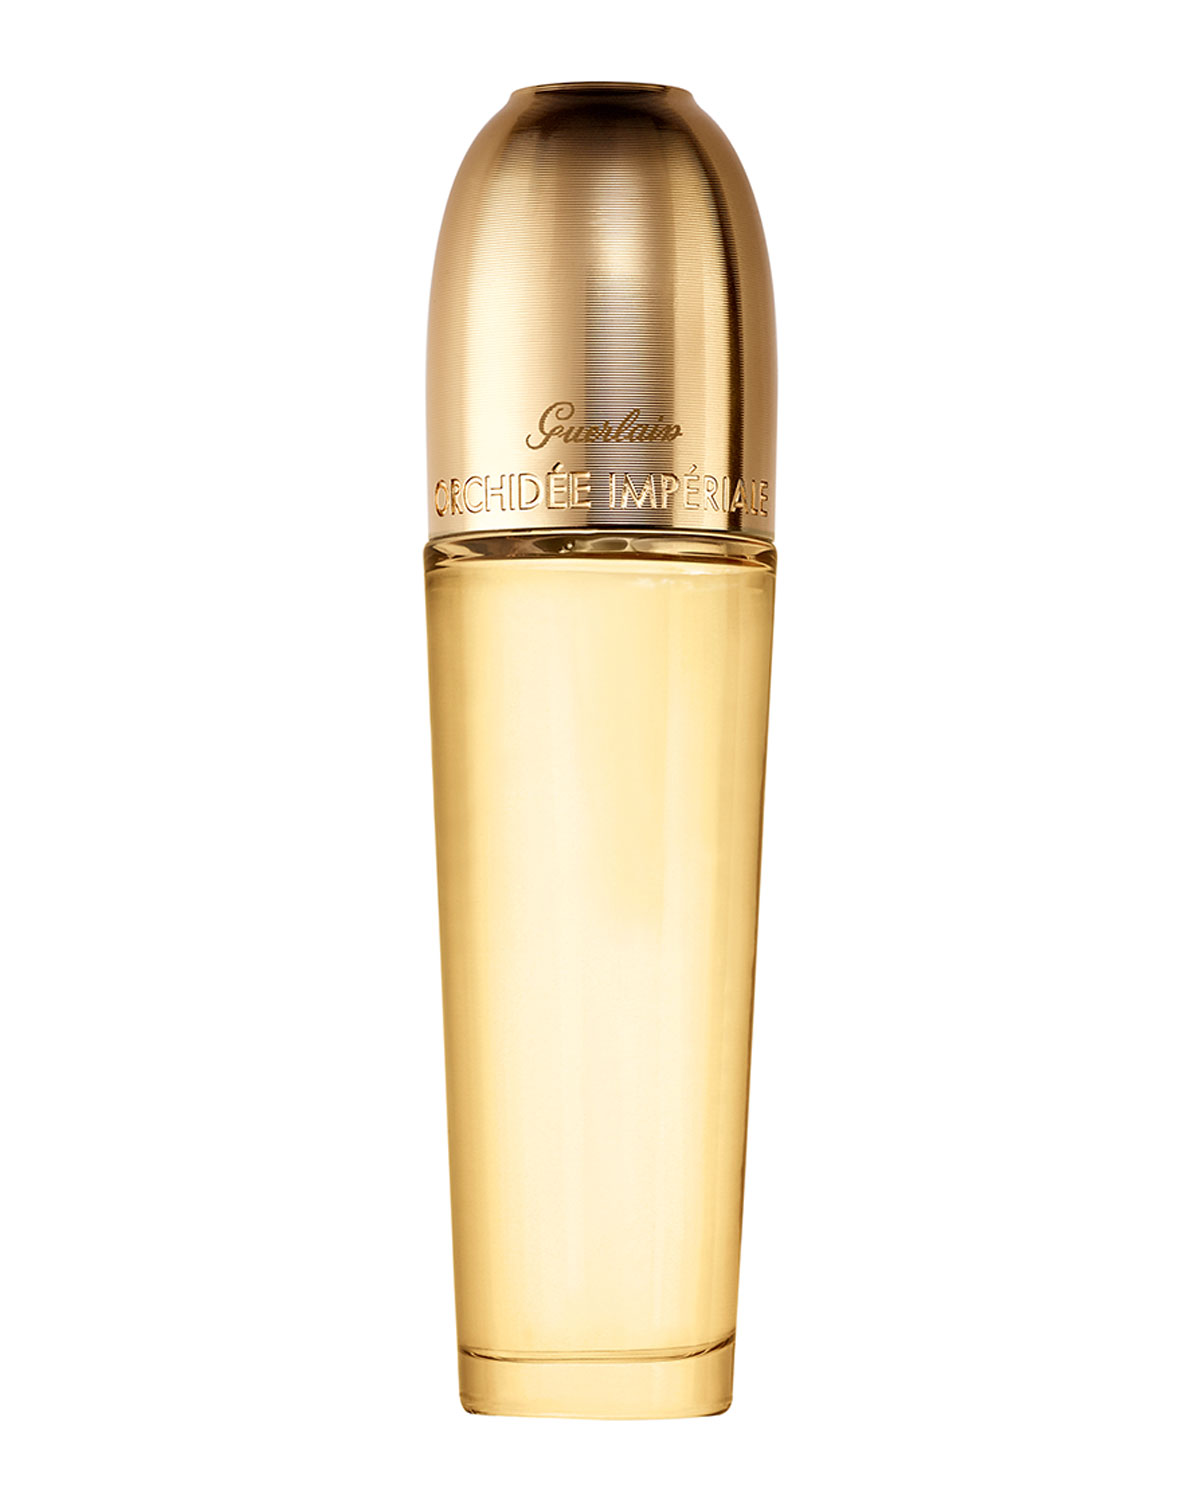 Guerlain ORCHIDEE IMPERIALE OIL, 30 ML